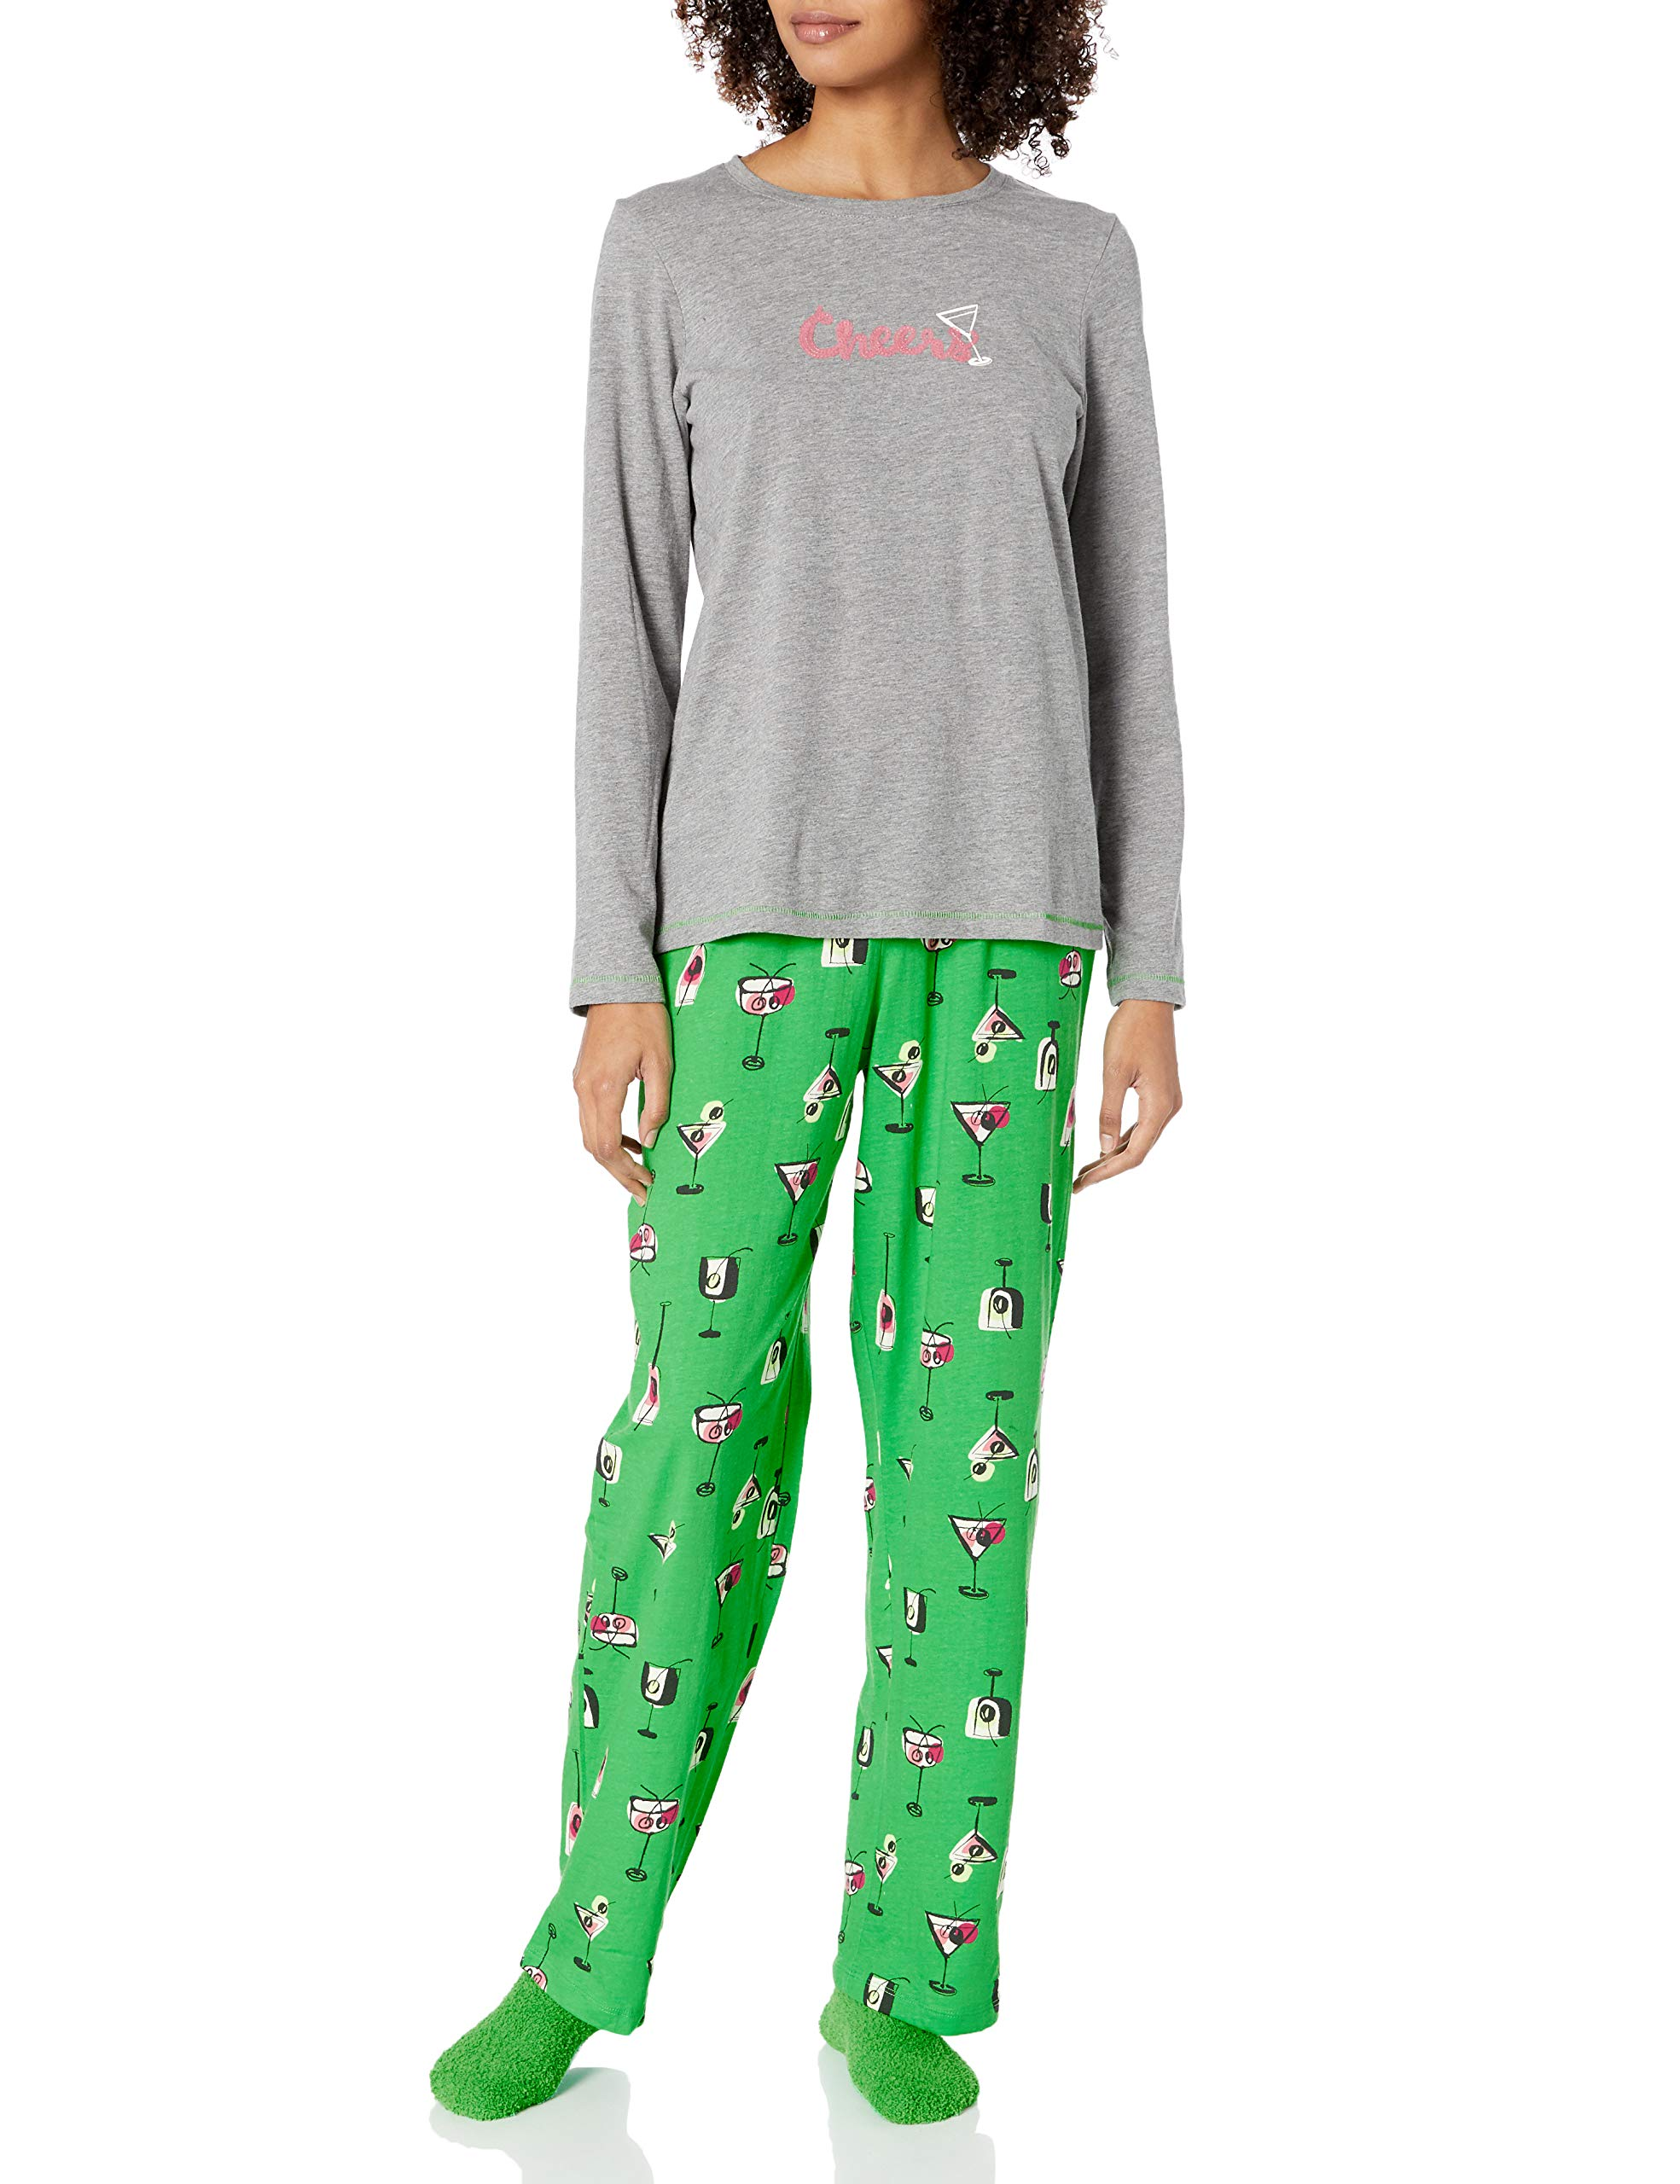 HUE Women's Printed Knit Tee and Pant 3 Piece Pajama Set